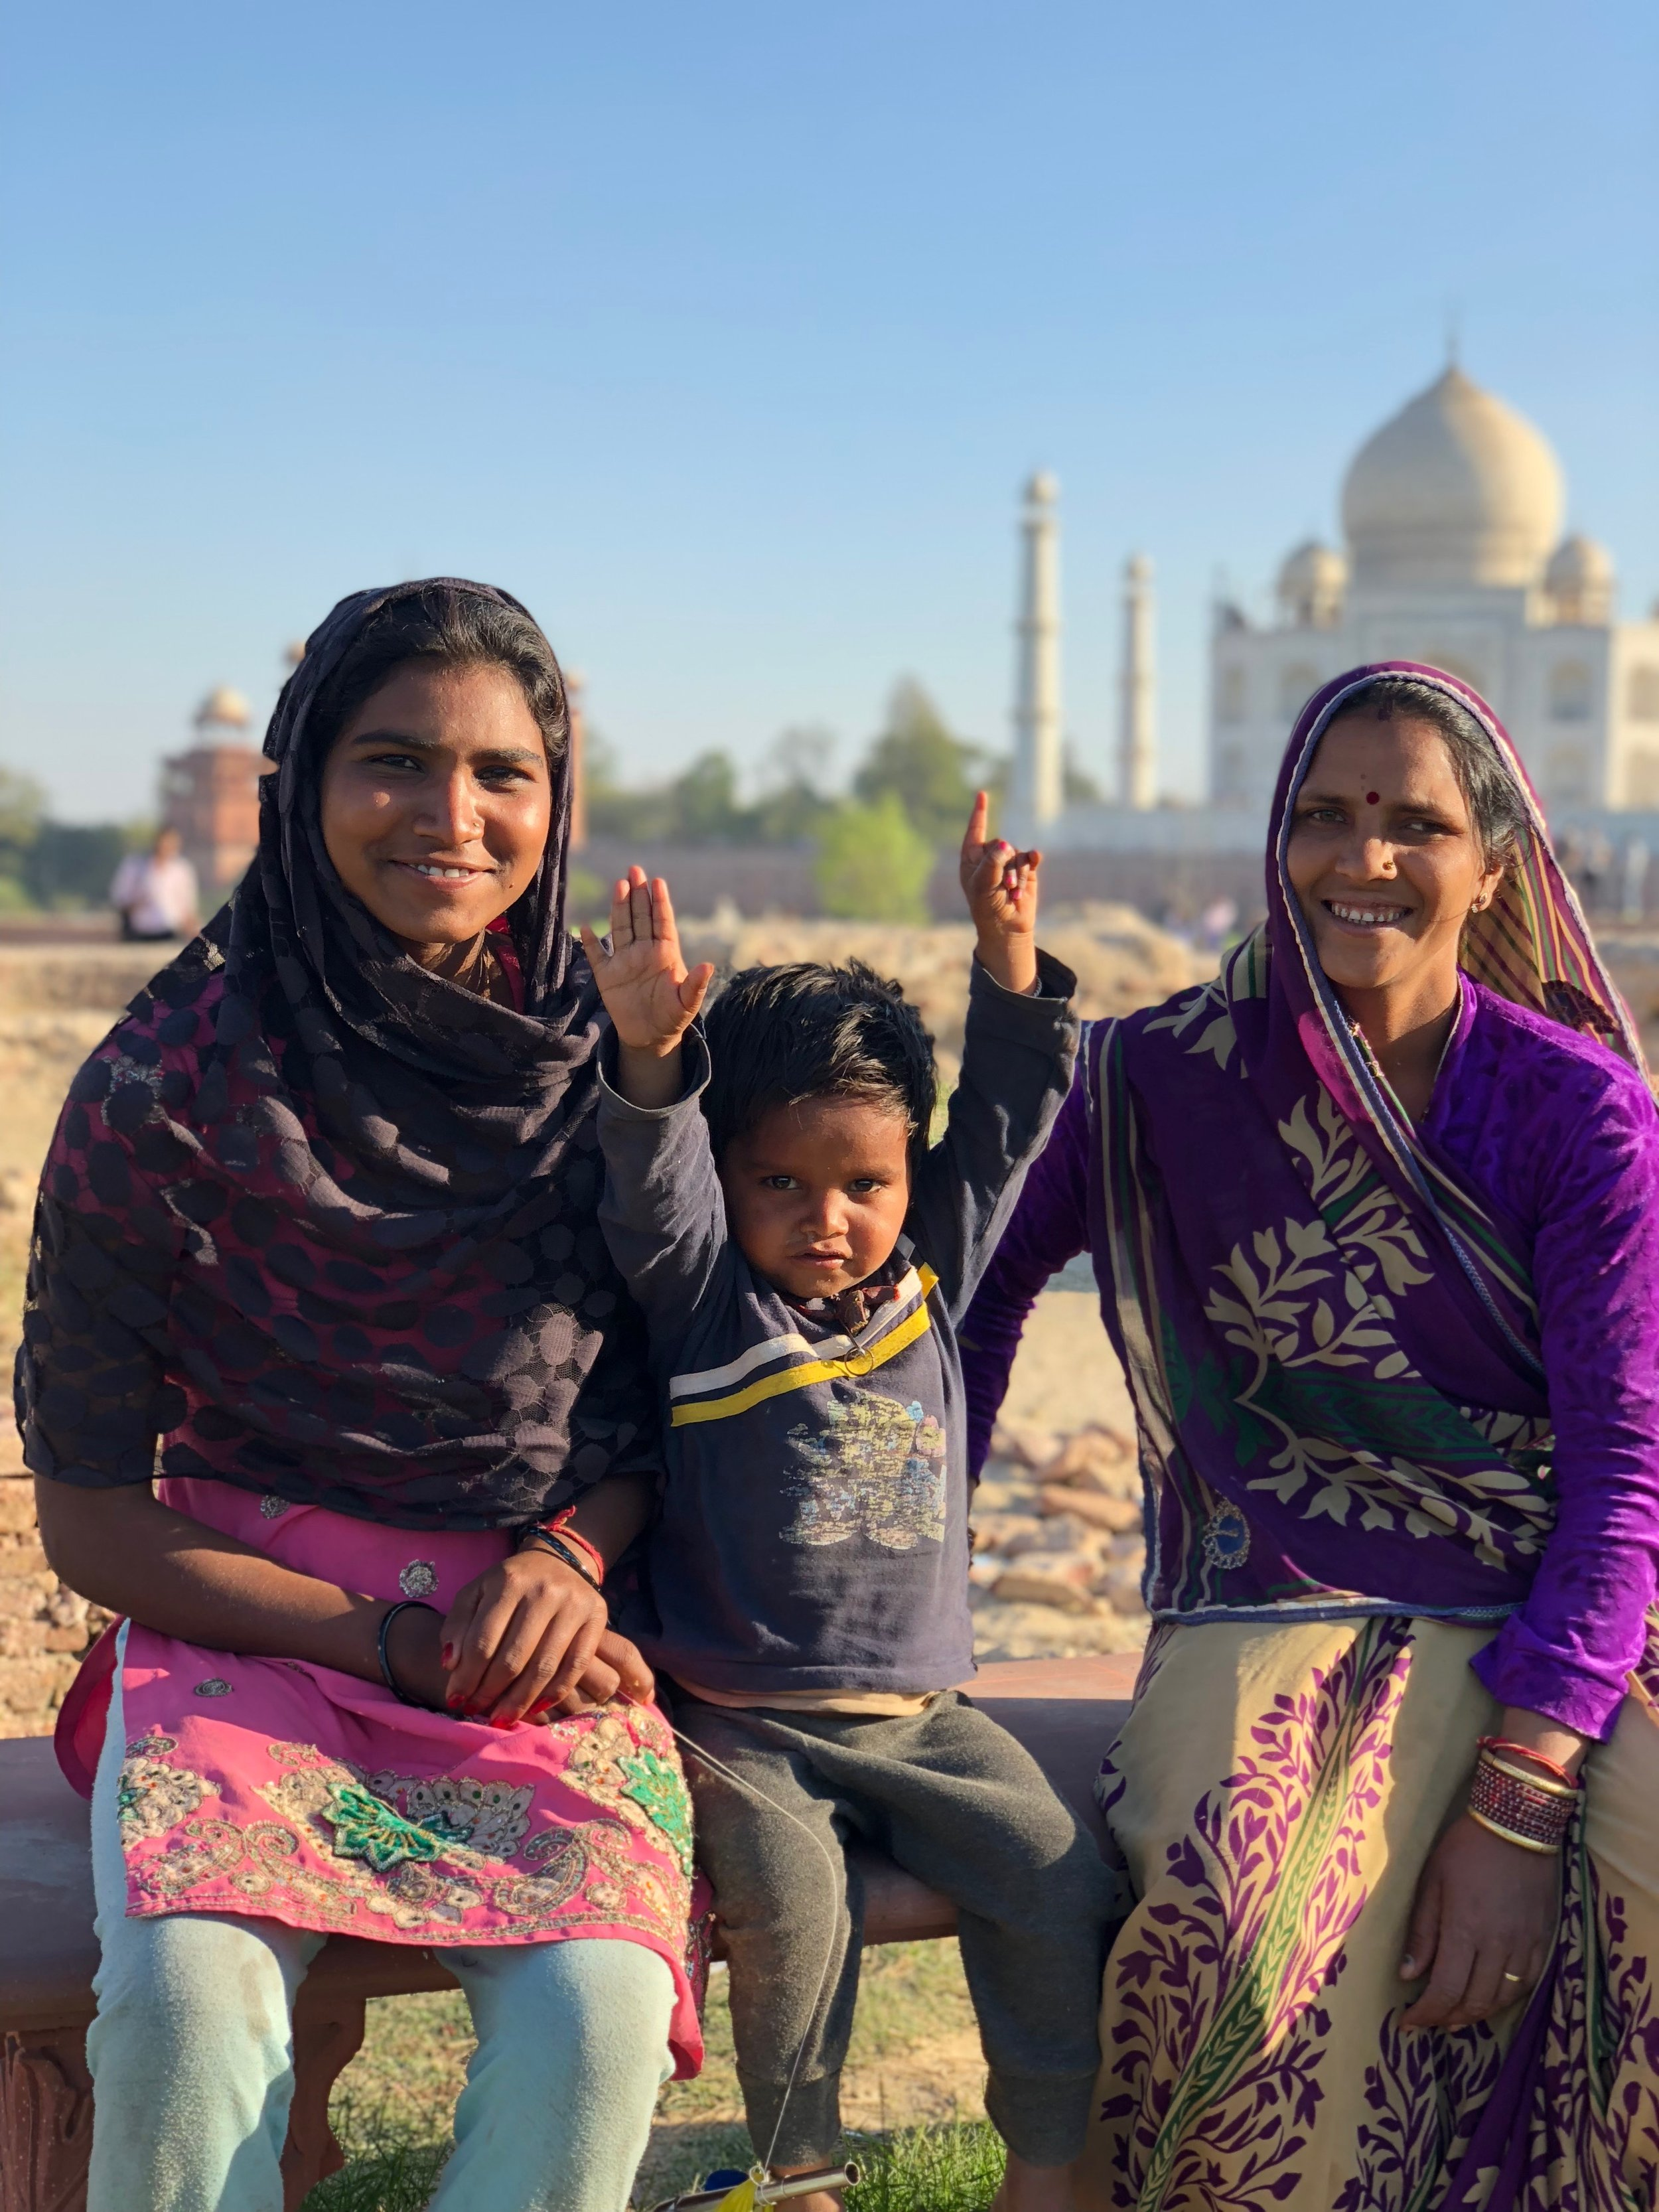 Everything about India is worth exploring. There is a visceral connection to the source of life here.